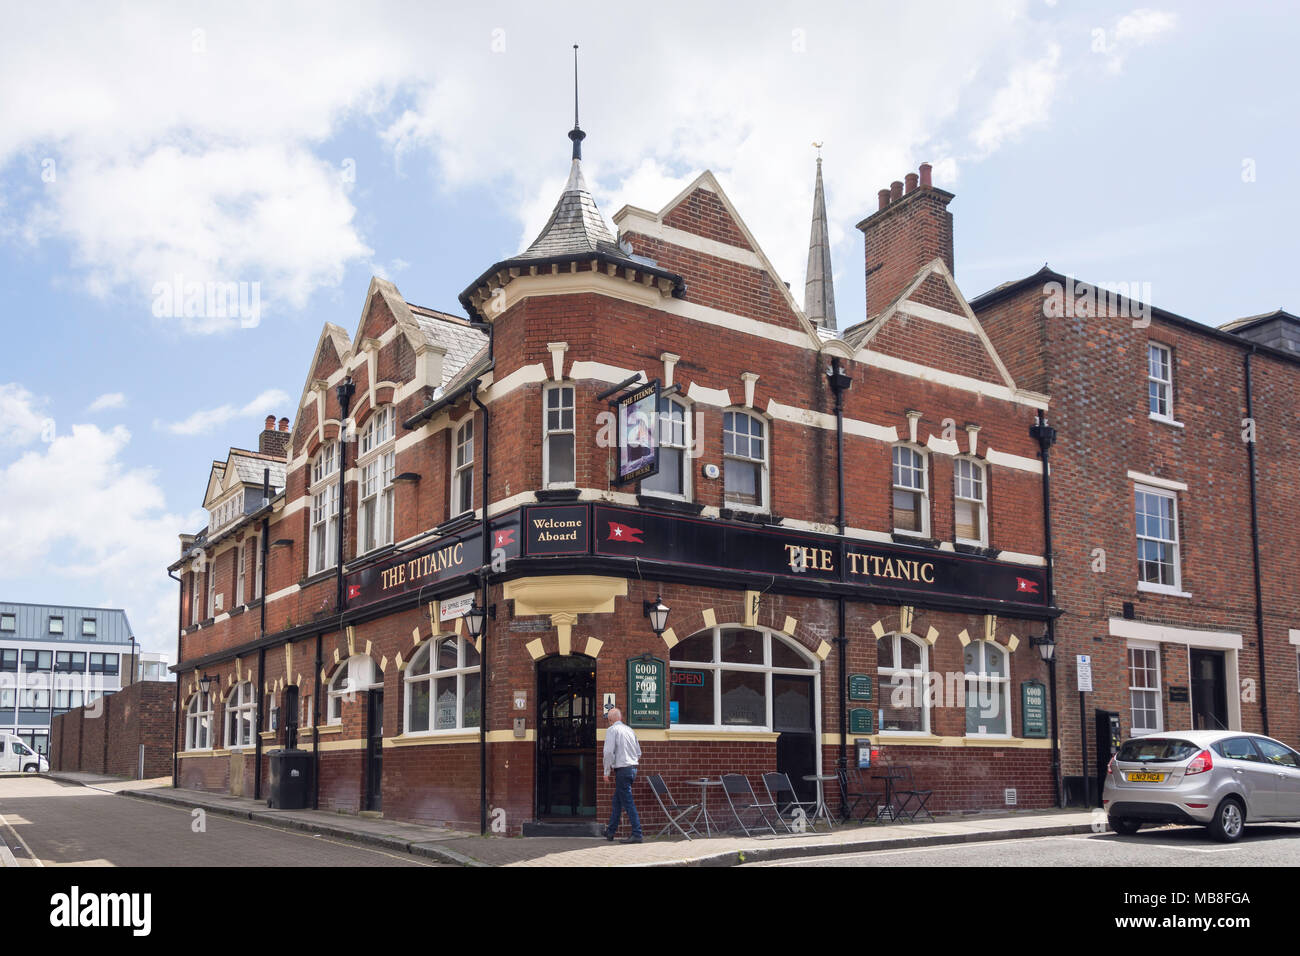 The Titanic Pub, Simnel Street, Old Town, Southampton, Hampshire, England, United Kingdom Stock Photo